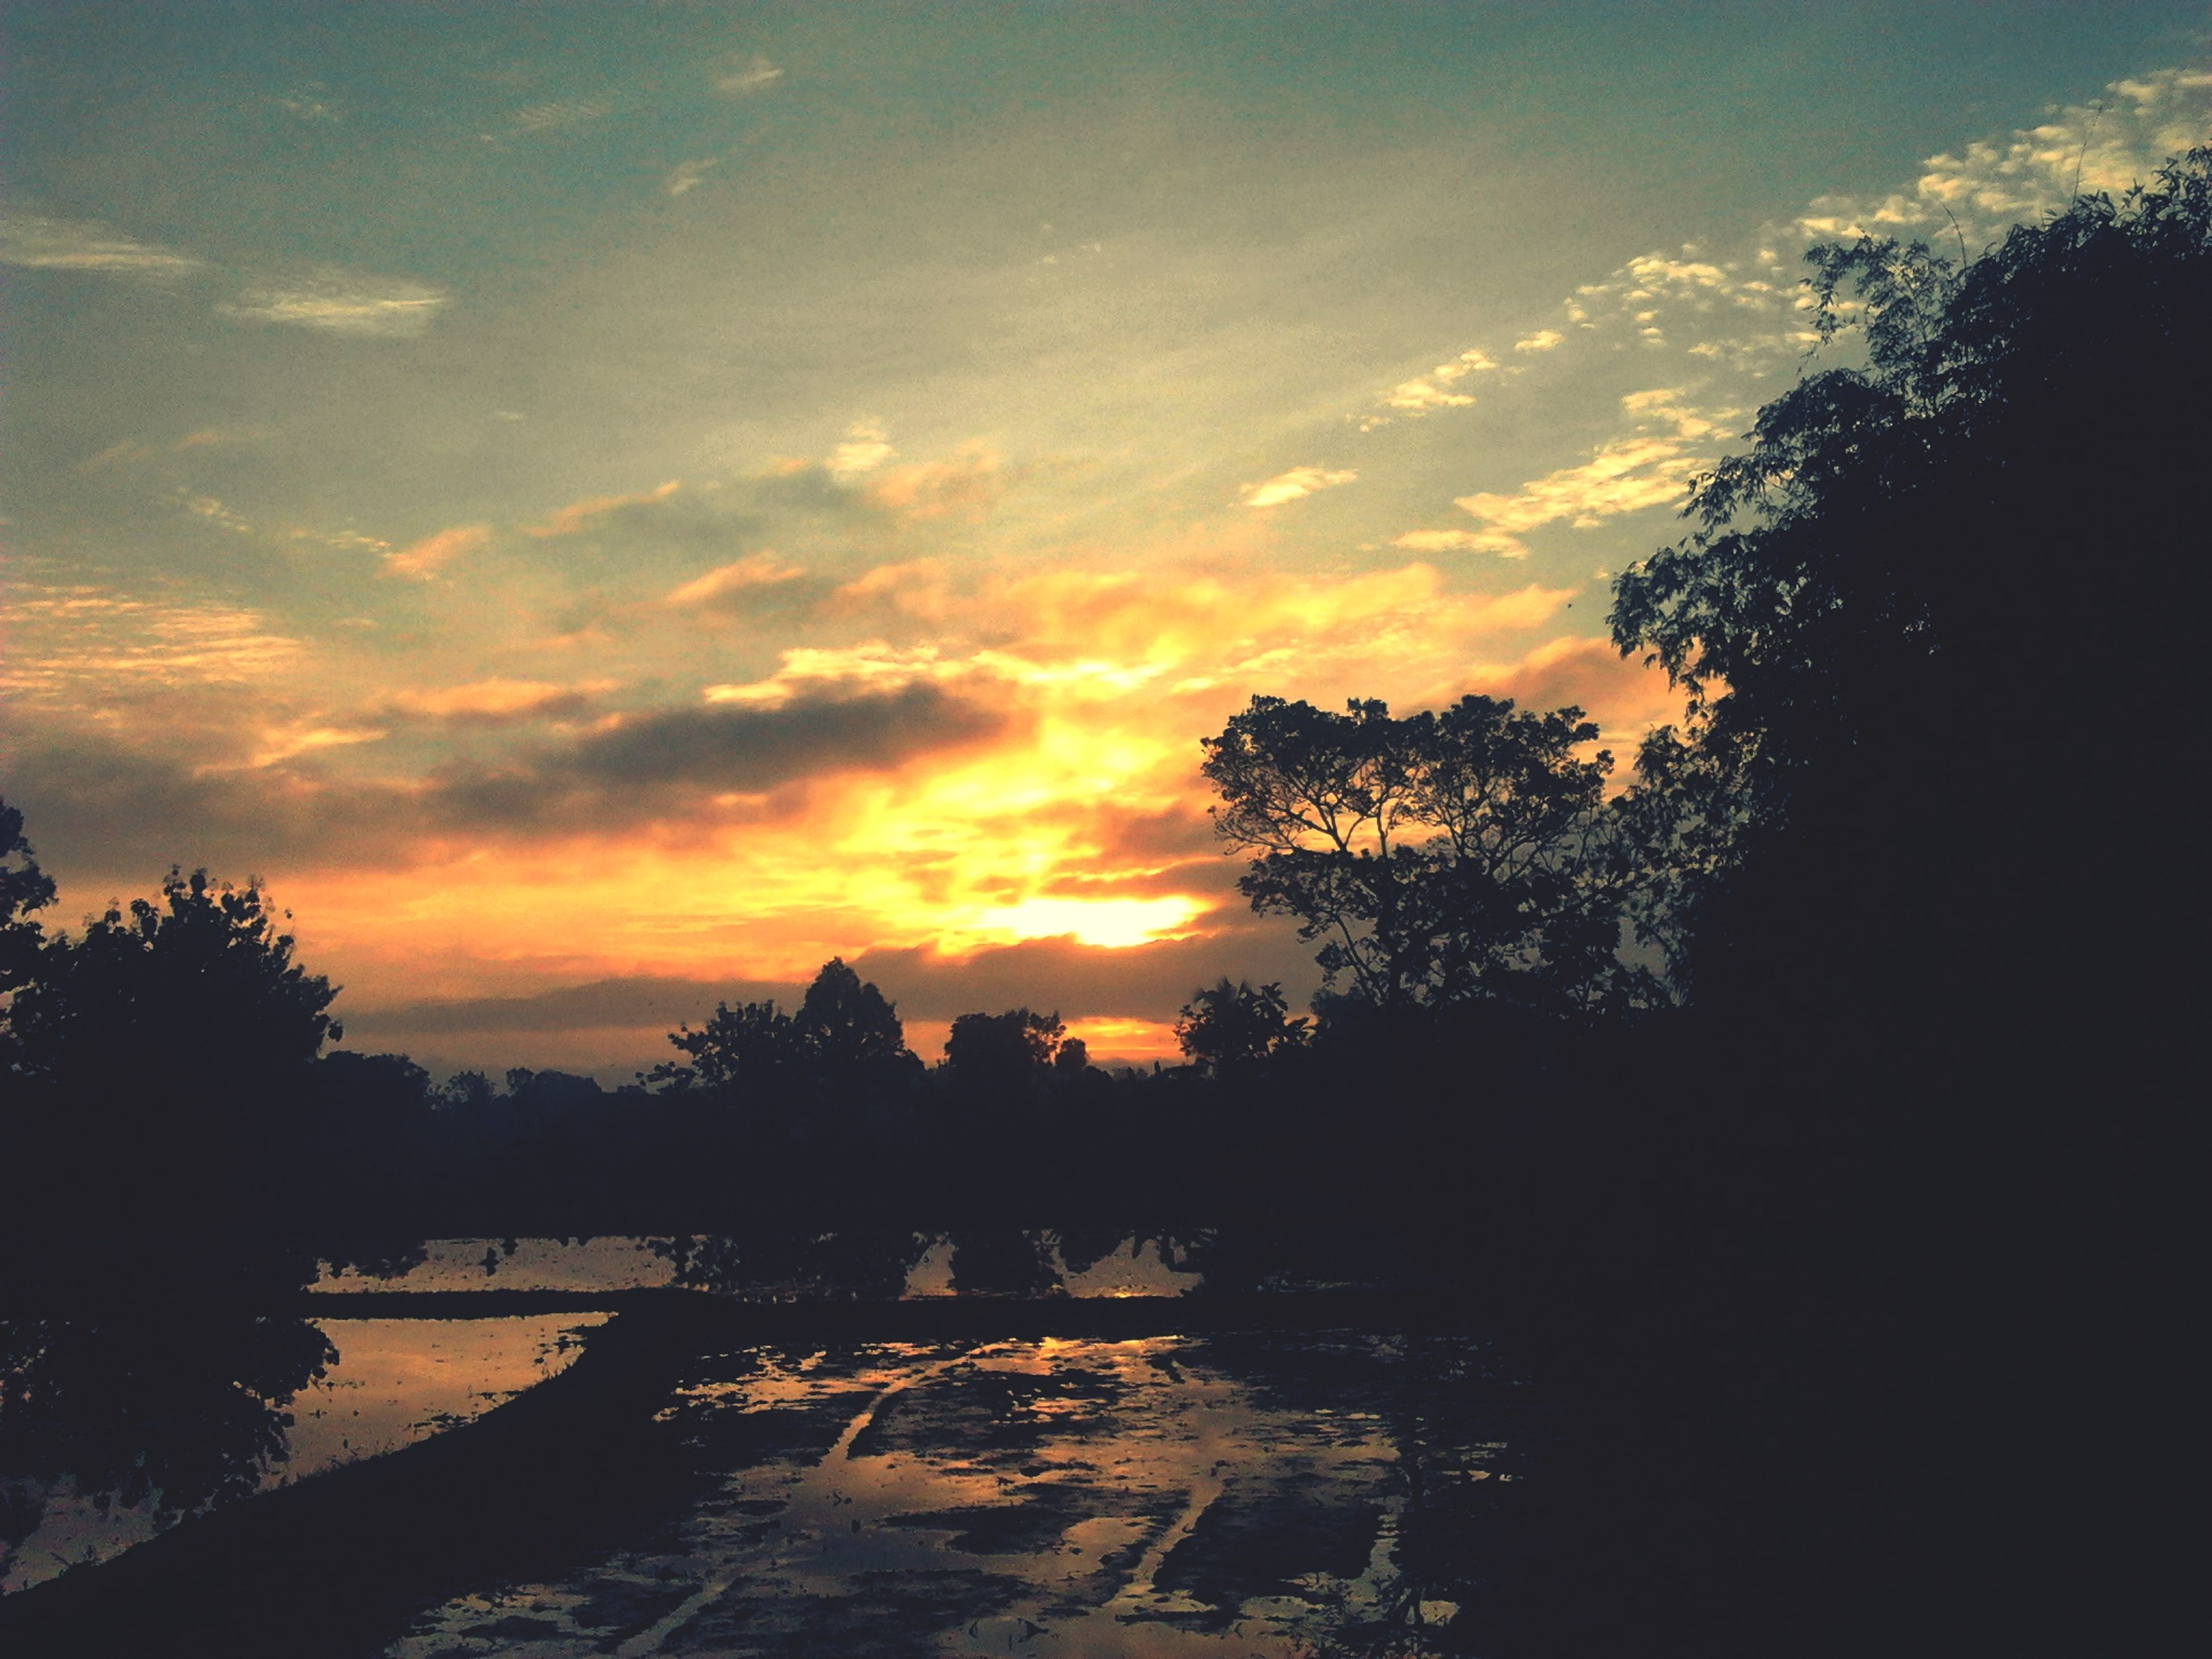 sunset, tree, sky, cloud - sky, scenics, beauty in nature, orange color, silhouette, nature, high angle view, tranquil scene, tranquility, water, building exterior, built structure, outdoors, architecture, river, cloudy, cloud